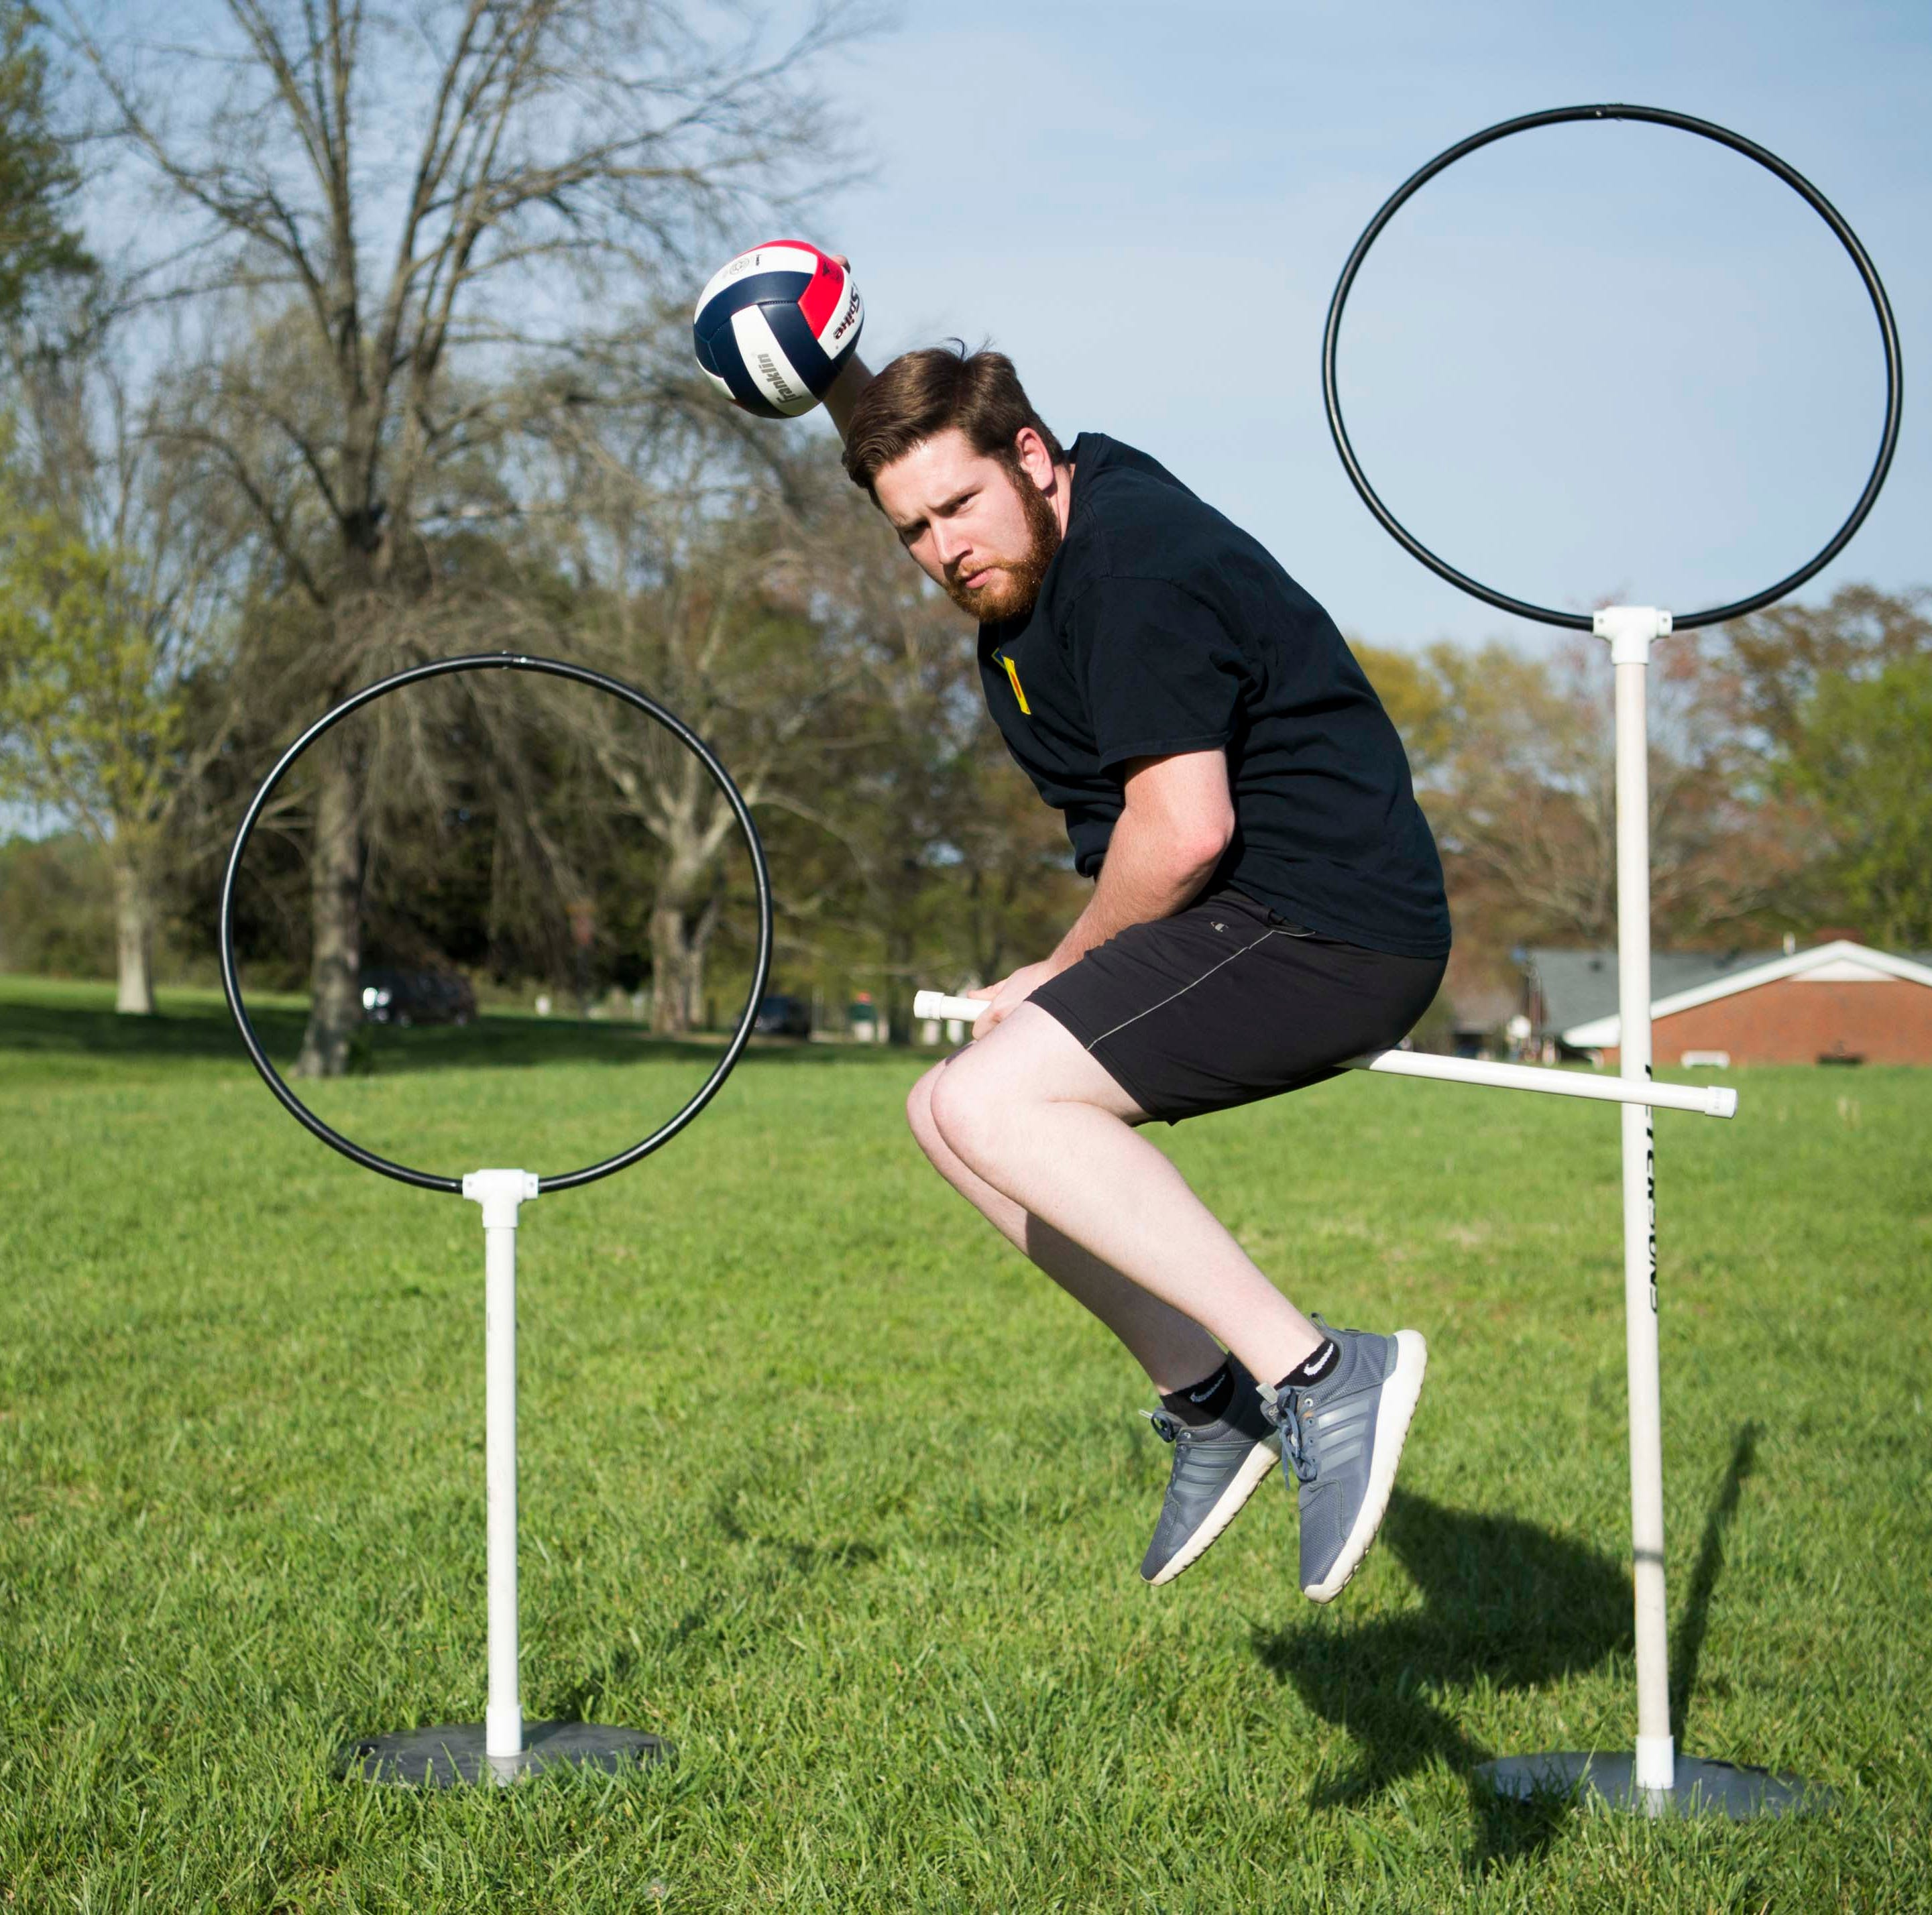 Quidditch is the sport you 'only dreamed about' — but the dream is true in Knoxville